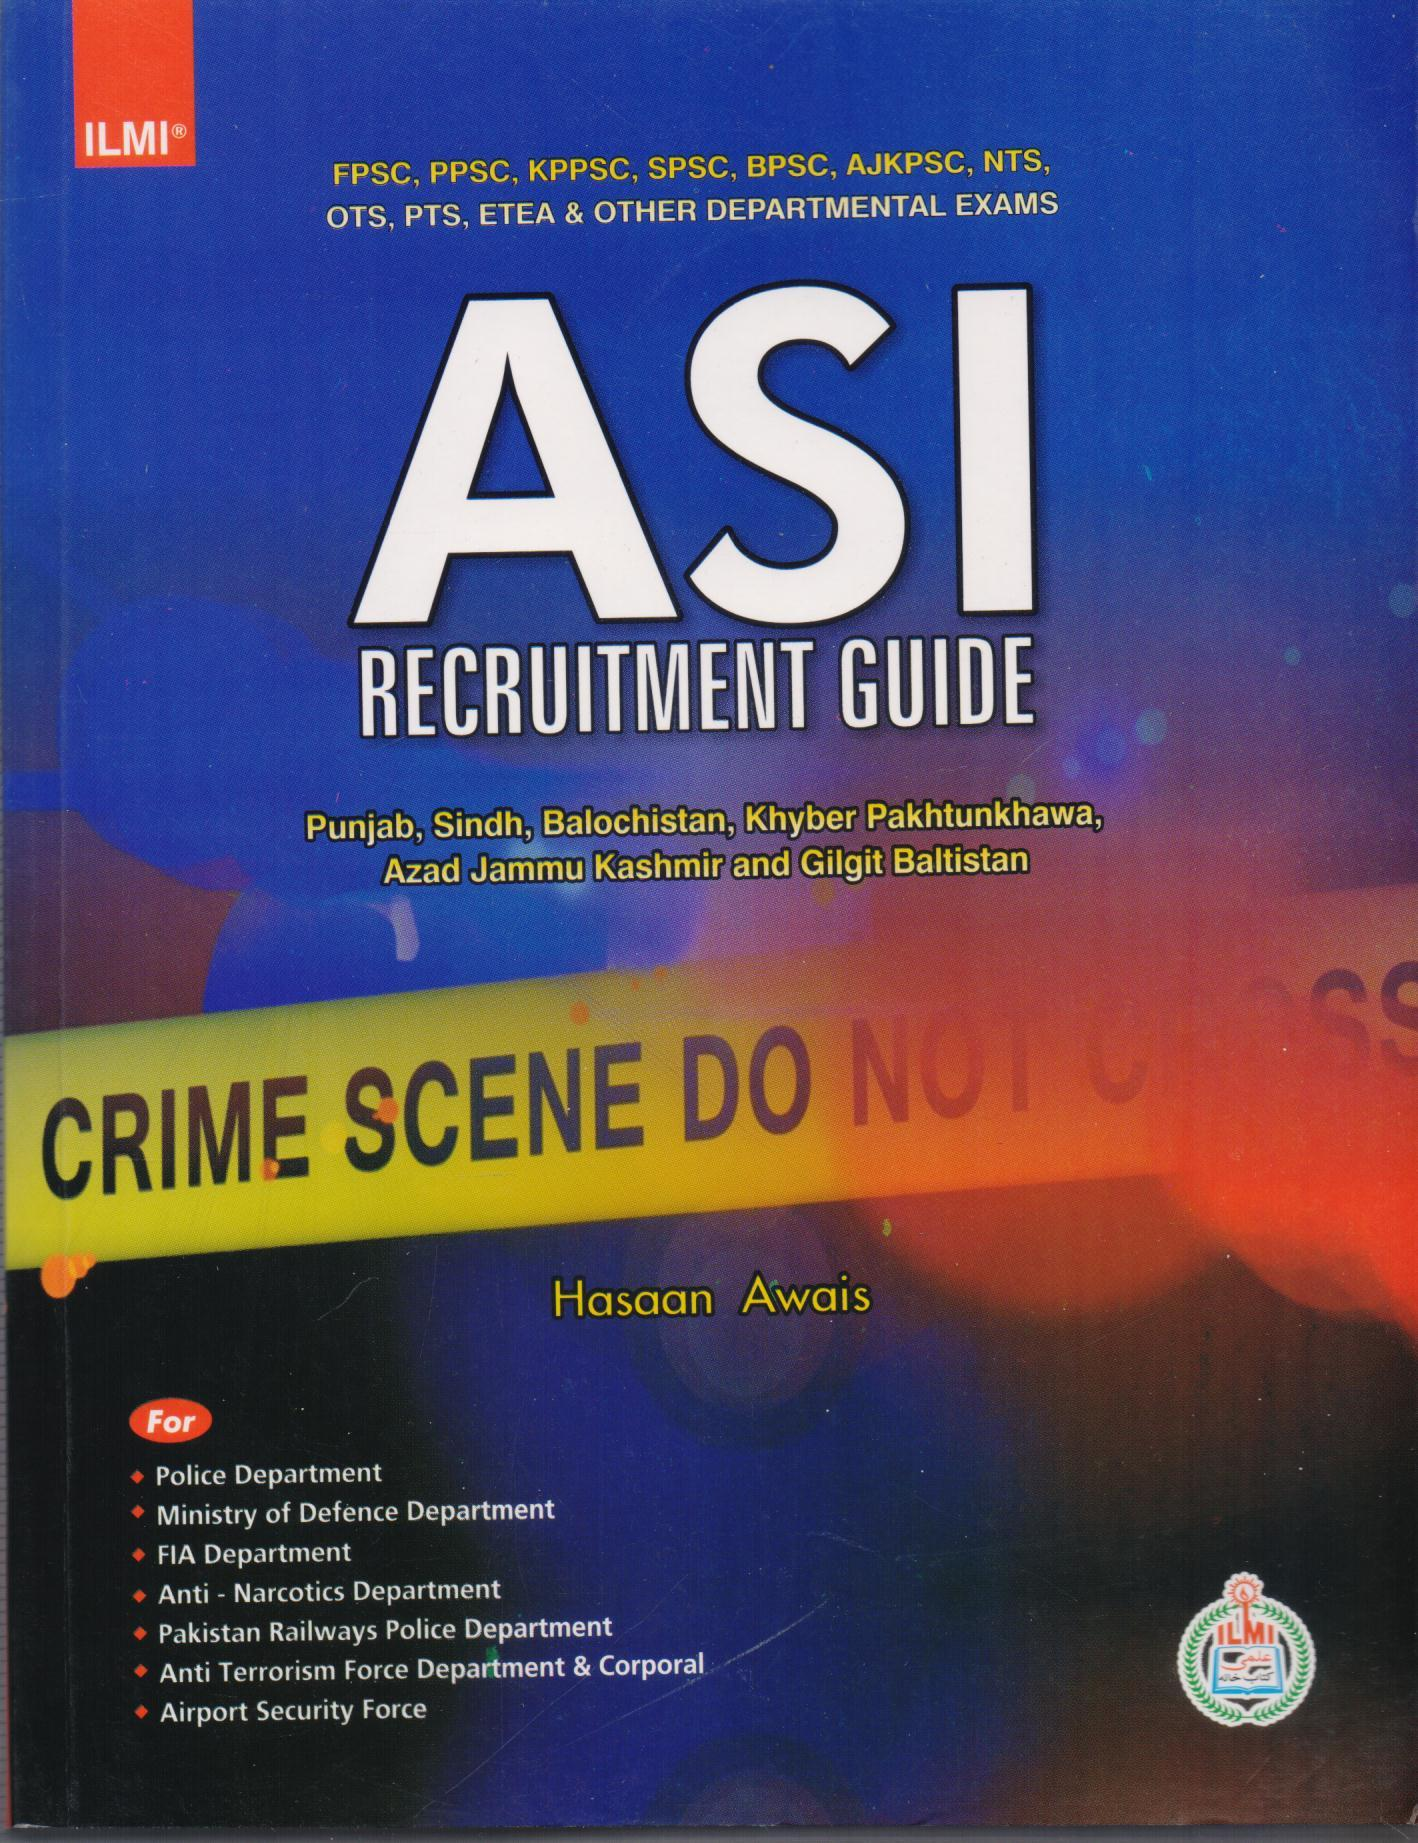 ilmi ASI Recruitment Guide by hassan Awais For PPSC, FPSC,KPPSC, SPSC, NTS